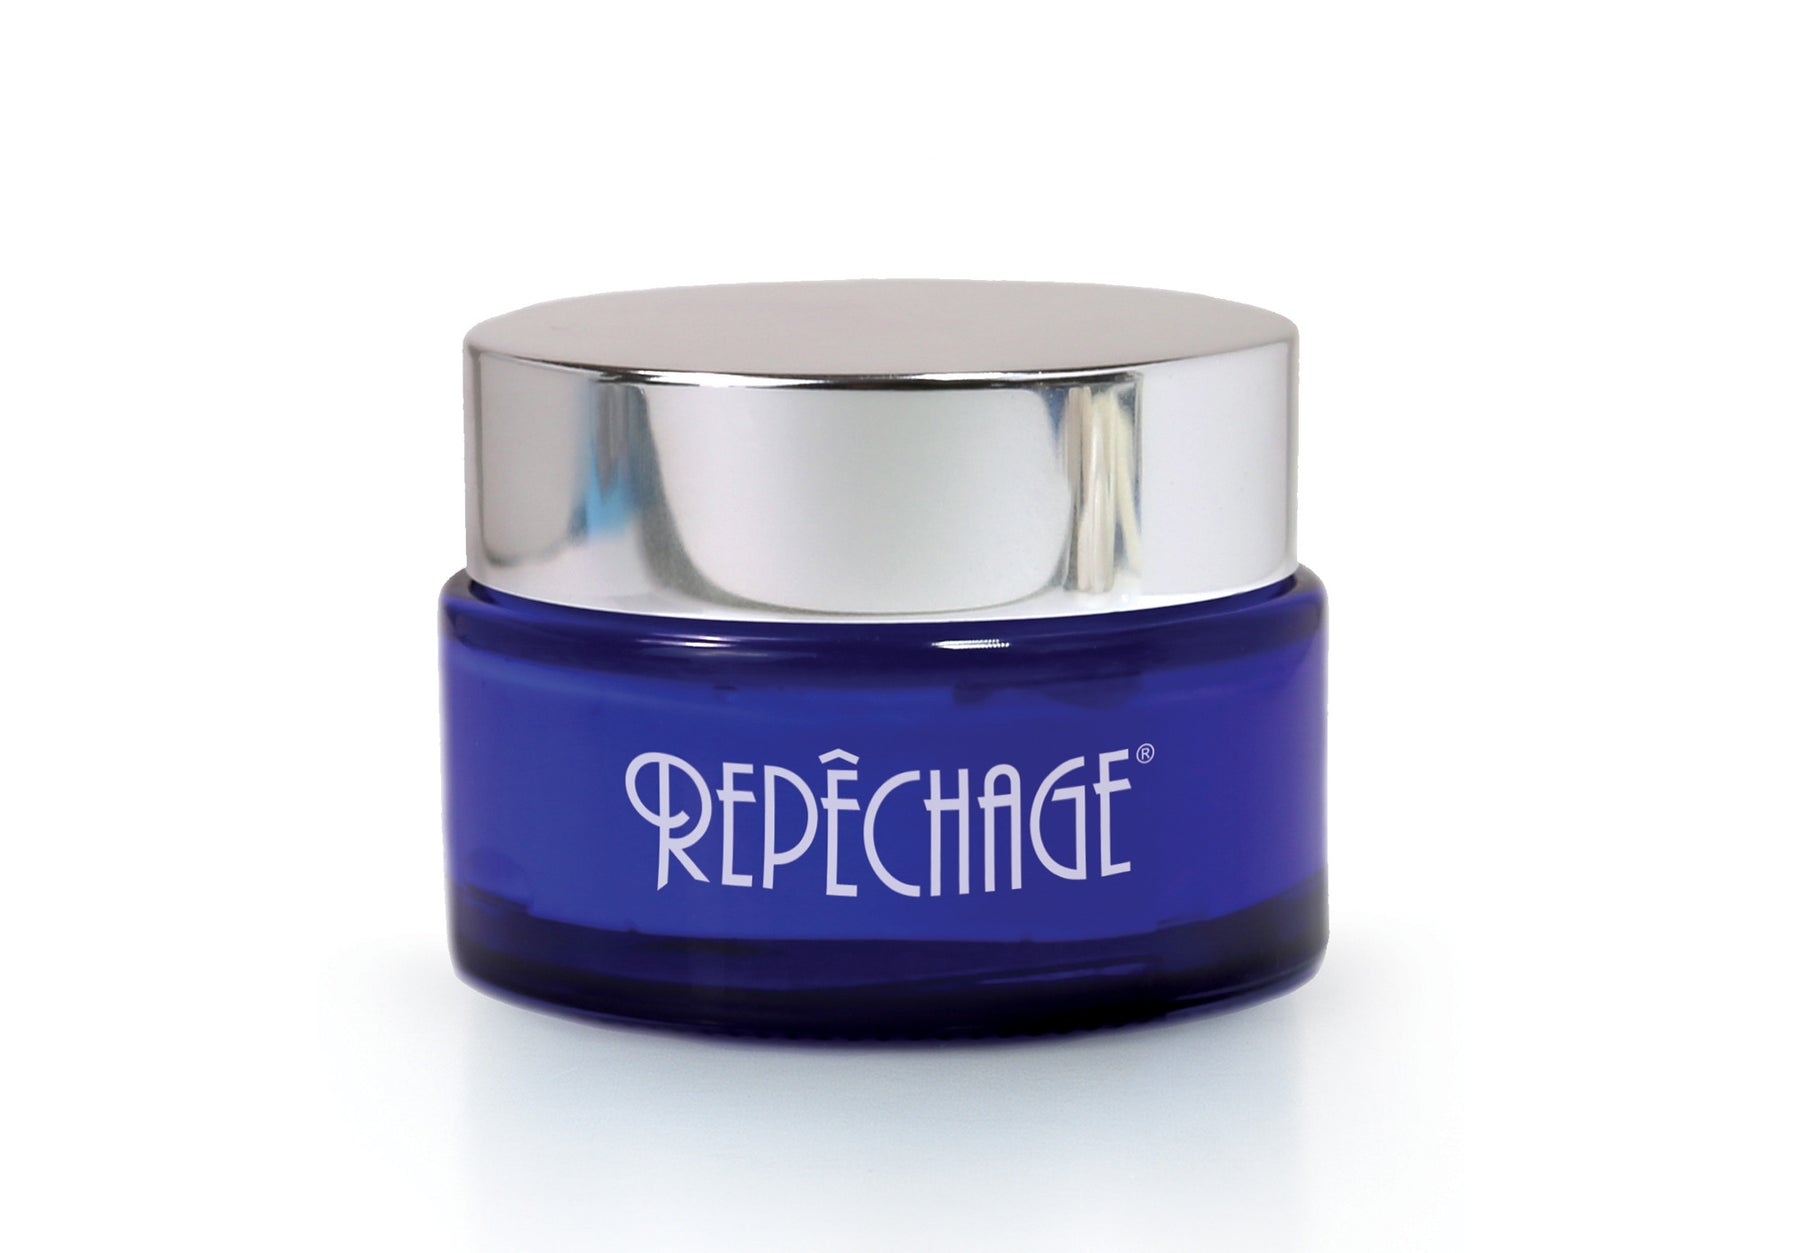 Professional Skin Care Products Repchage Official Site Mineral Botanica Whitening Plus Complex Day Cream Opti Firm Lift Daytime Protection